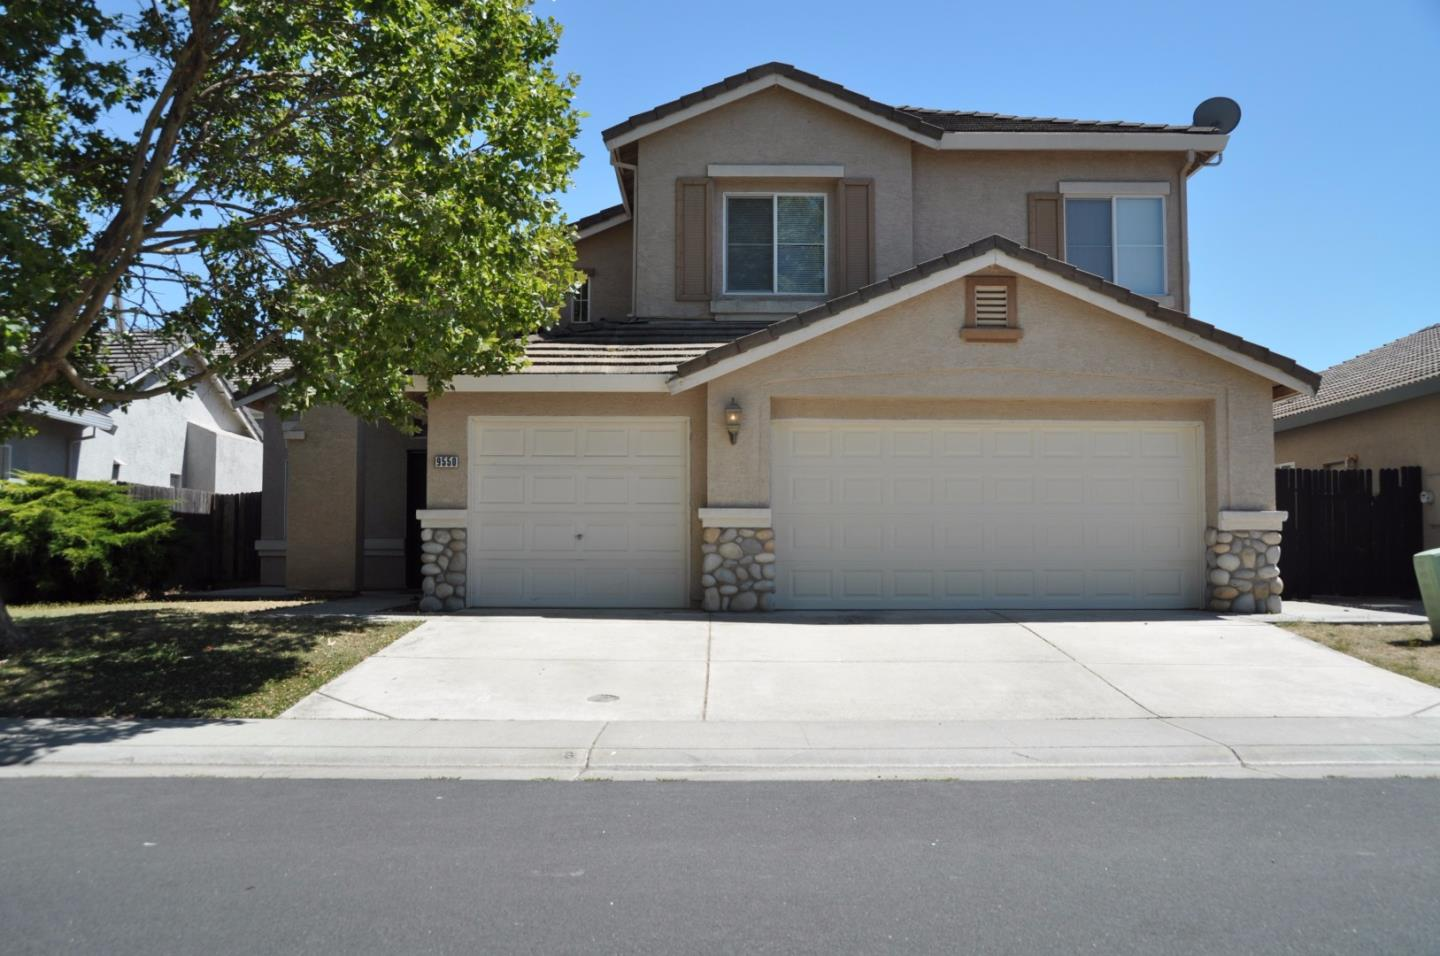 Single Family Home for Sale at 9550 Moon River Way Elk Grove, California 95624 United States